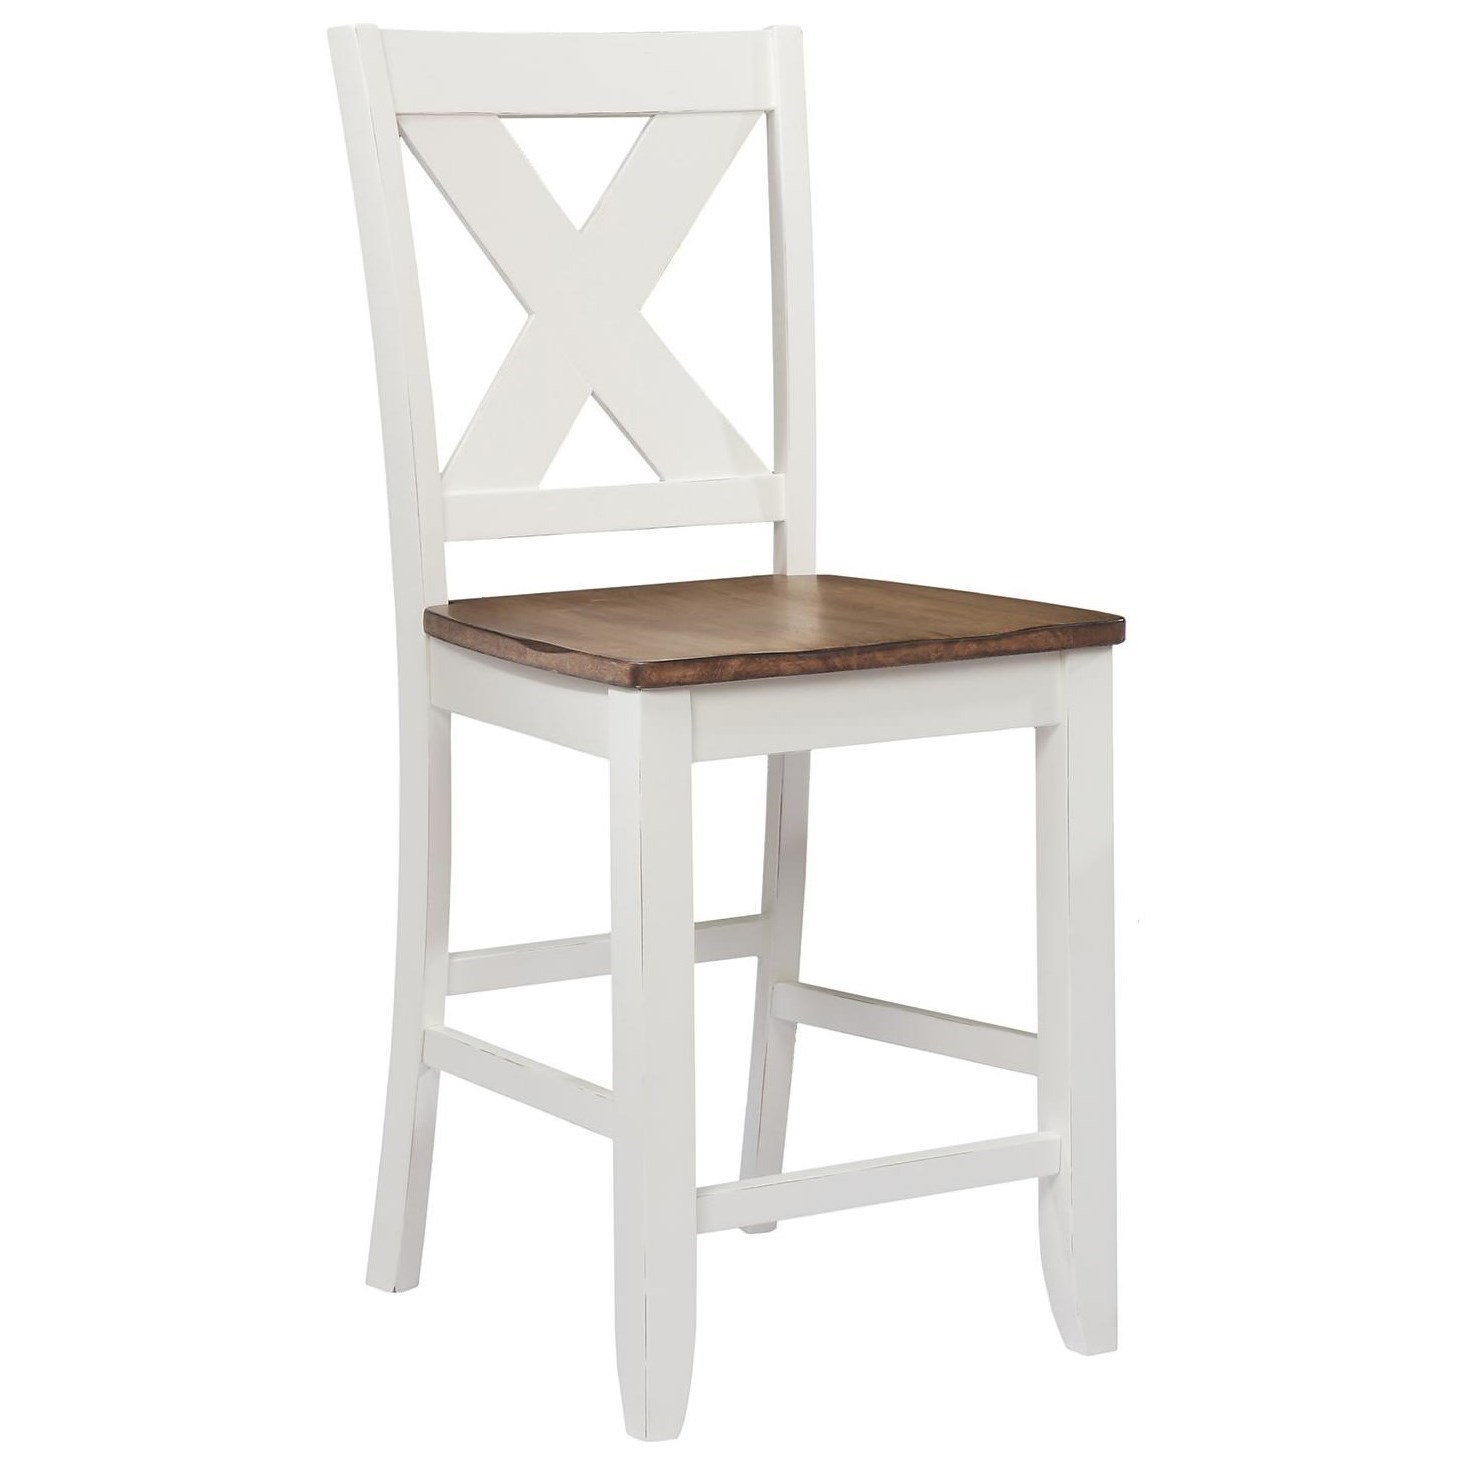 Sensational Pacifica X Back Counter Height Barstool Cjindustries Chair Design For Home Cjindustriesco